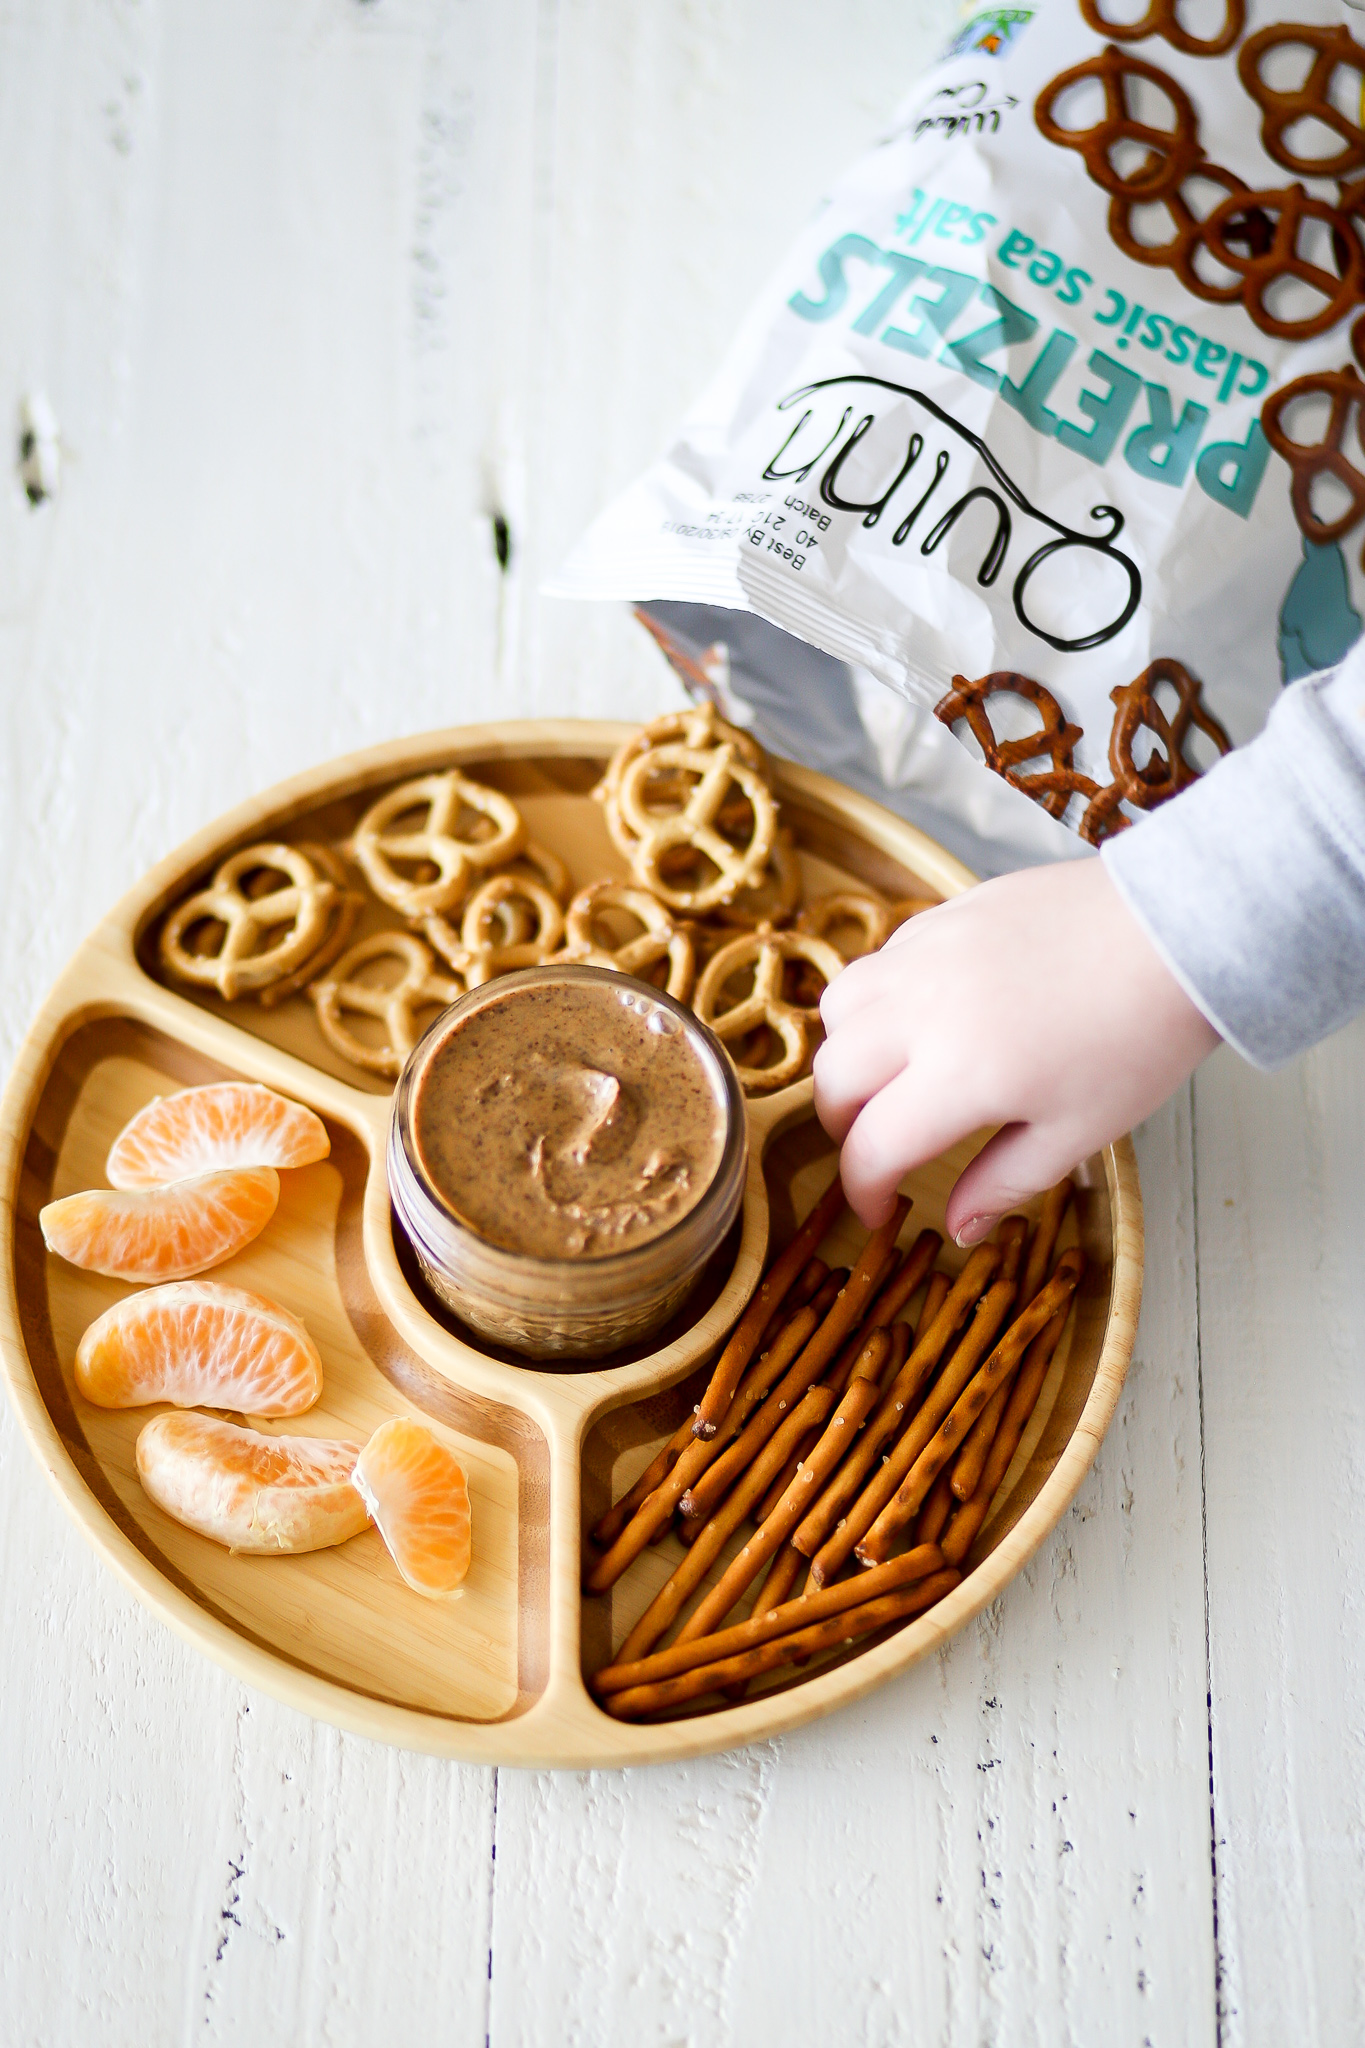 Snack Ideas for Picky Eaters | Set the Table #pickyeaters #kidsnacks #quinnsnacks #ad